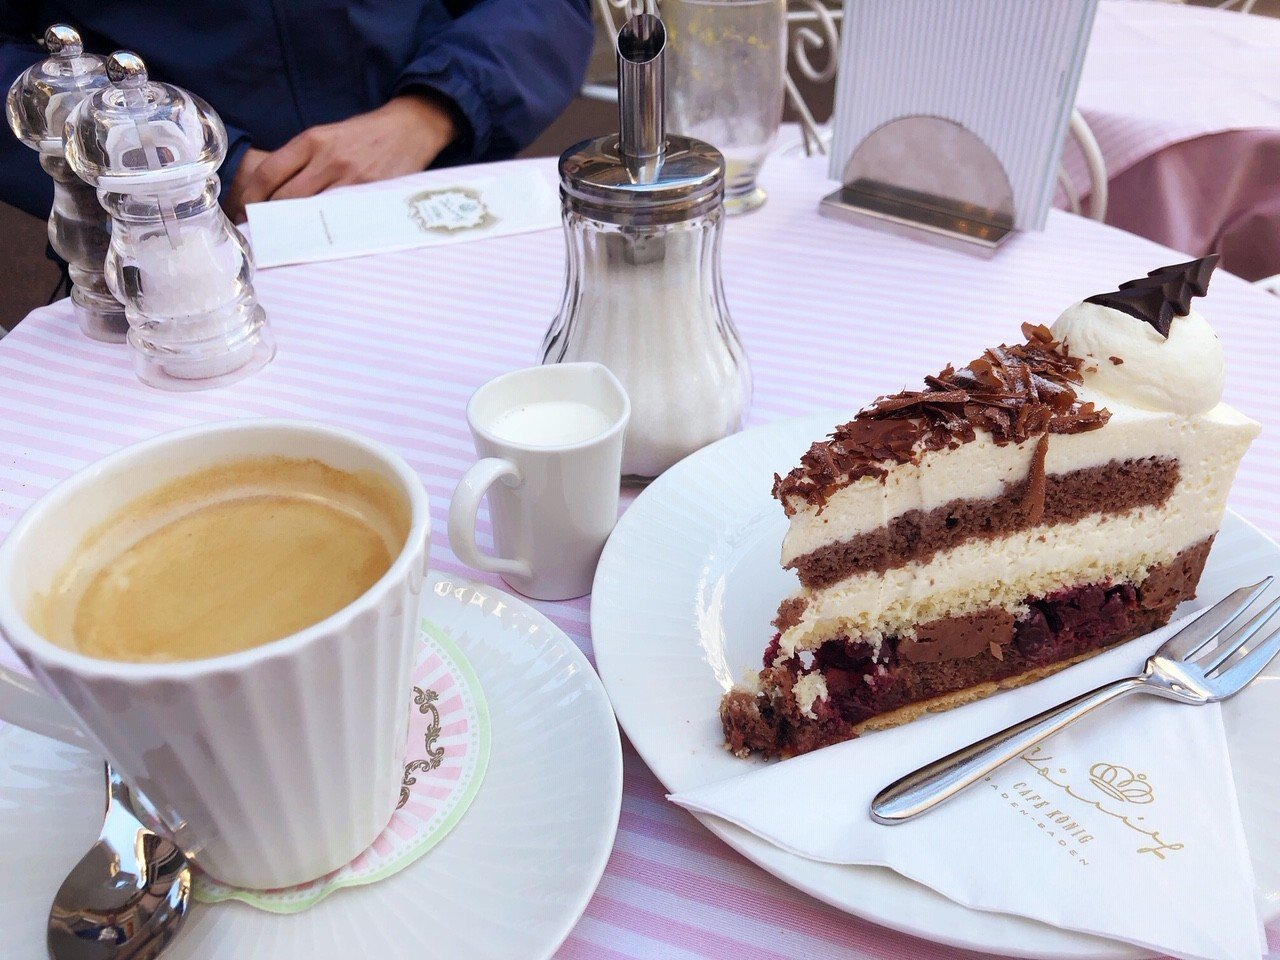 coffee and slice of black forest cake set on a pink table at Cafe Koenig